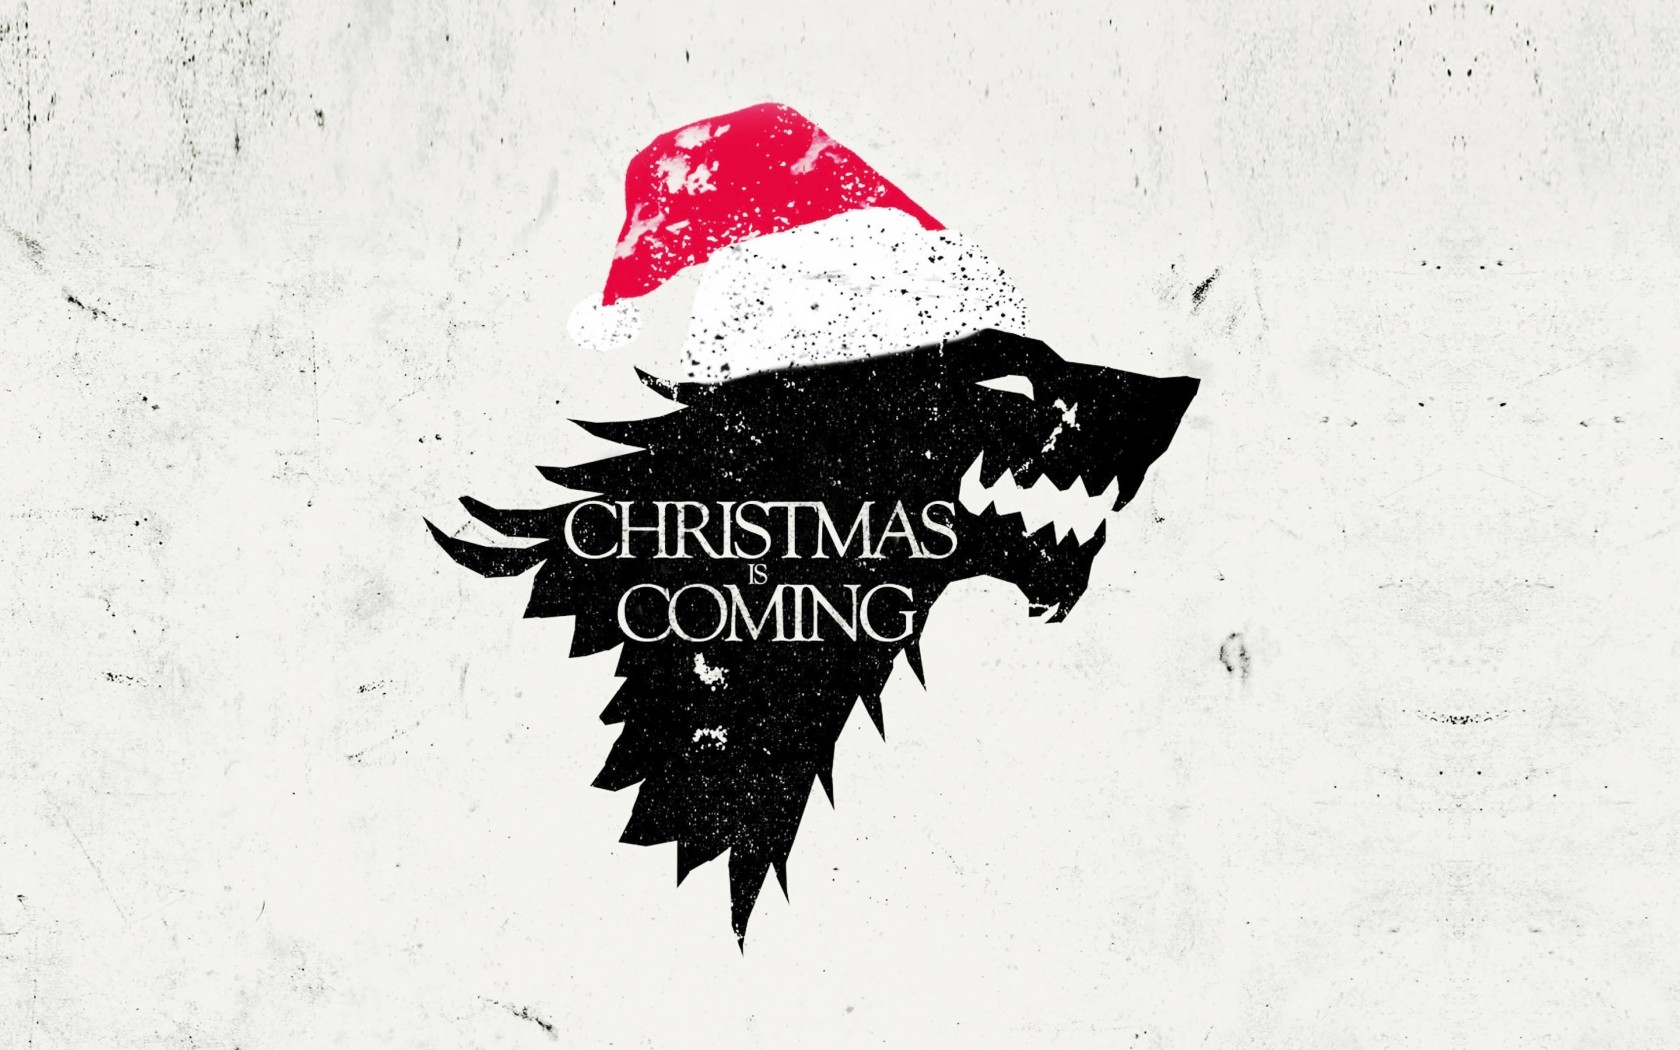 Christmas is Coming Wallpaper for Desktop 1680x1050